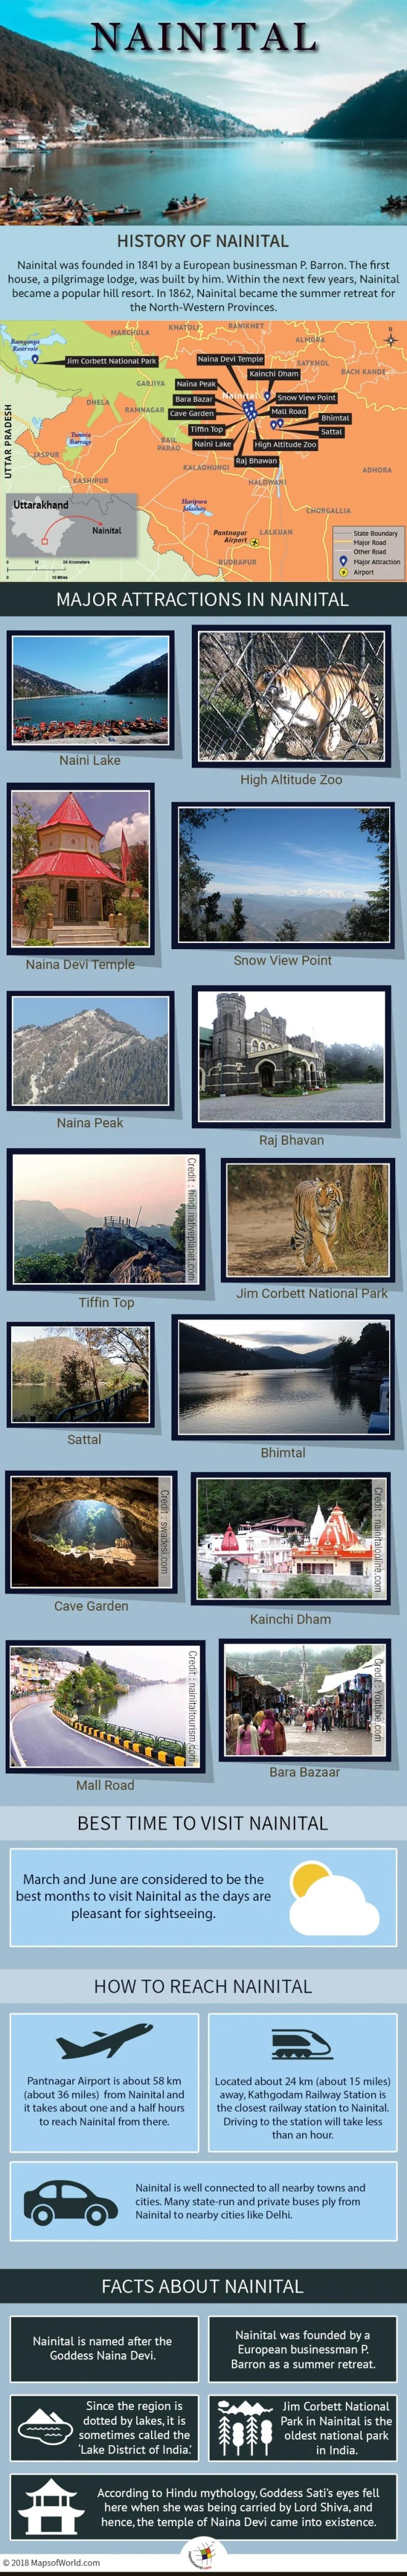 Popular Places to Visit in Nainital